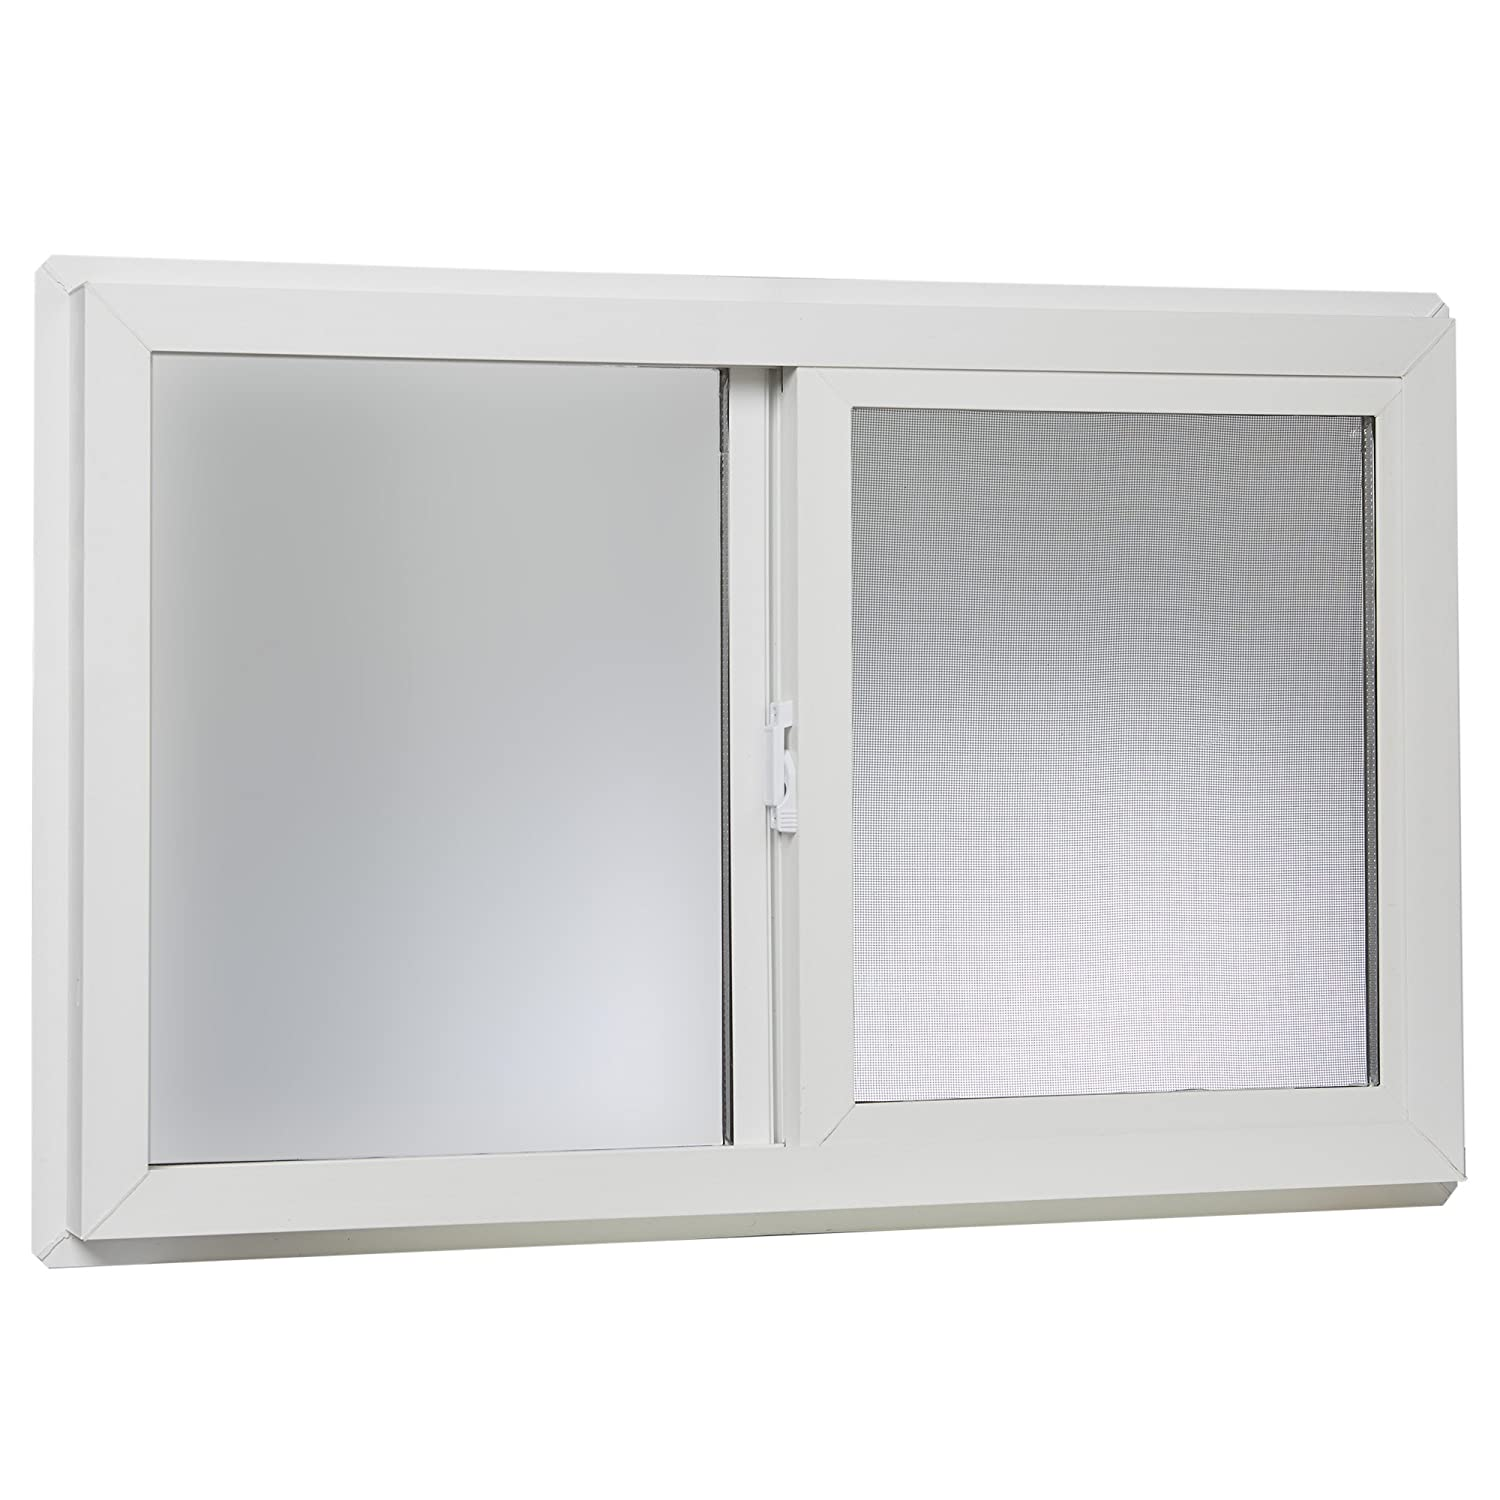 "Park Ridge VBSI3220PR Vinyl Basement Slider Window, 32"" x 20"", White"